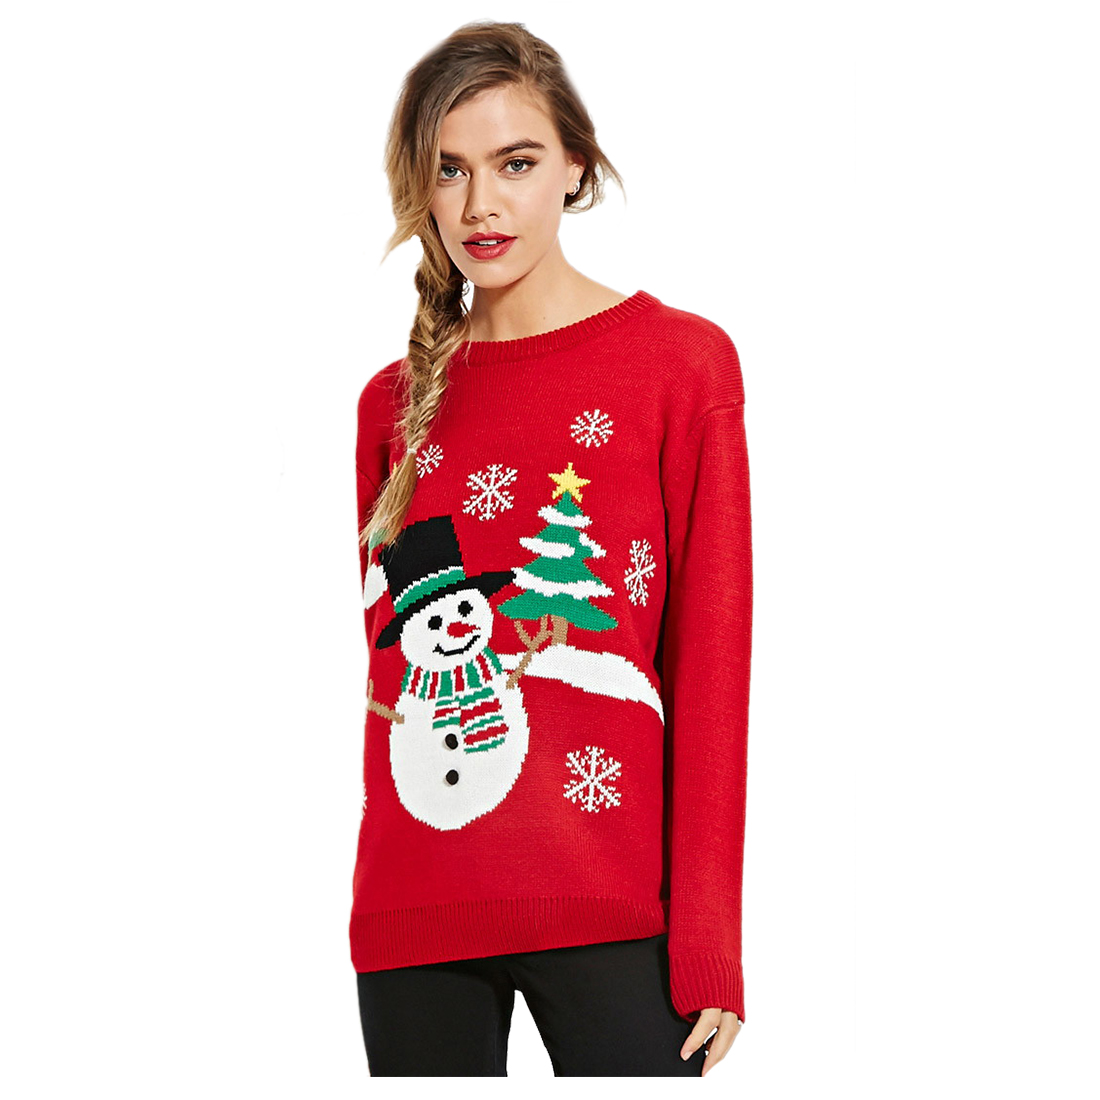 Women Fashion Autumn Winter Pattern Knitted Snowman Christmas Tree Sweaters Lovelys Christmas Sweater Leisure Warmer Pullover